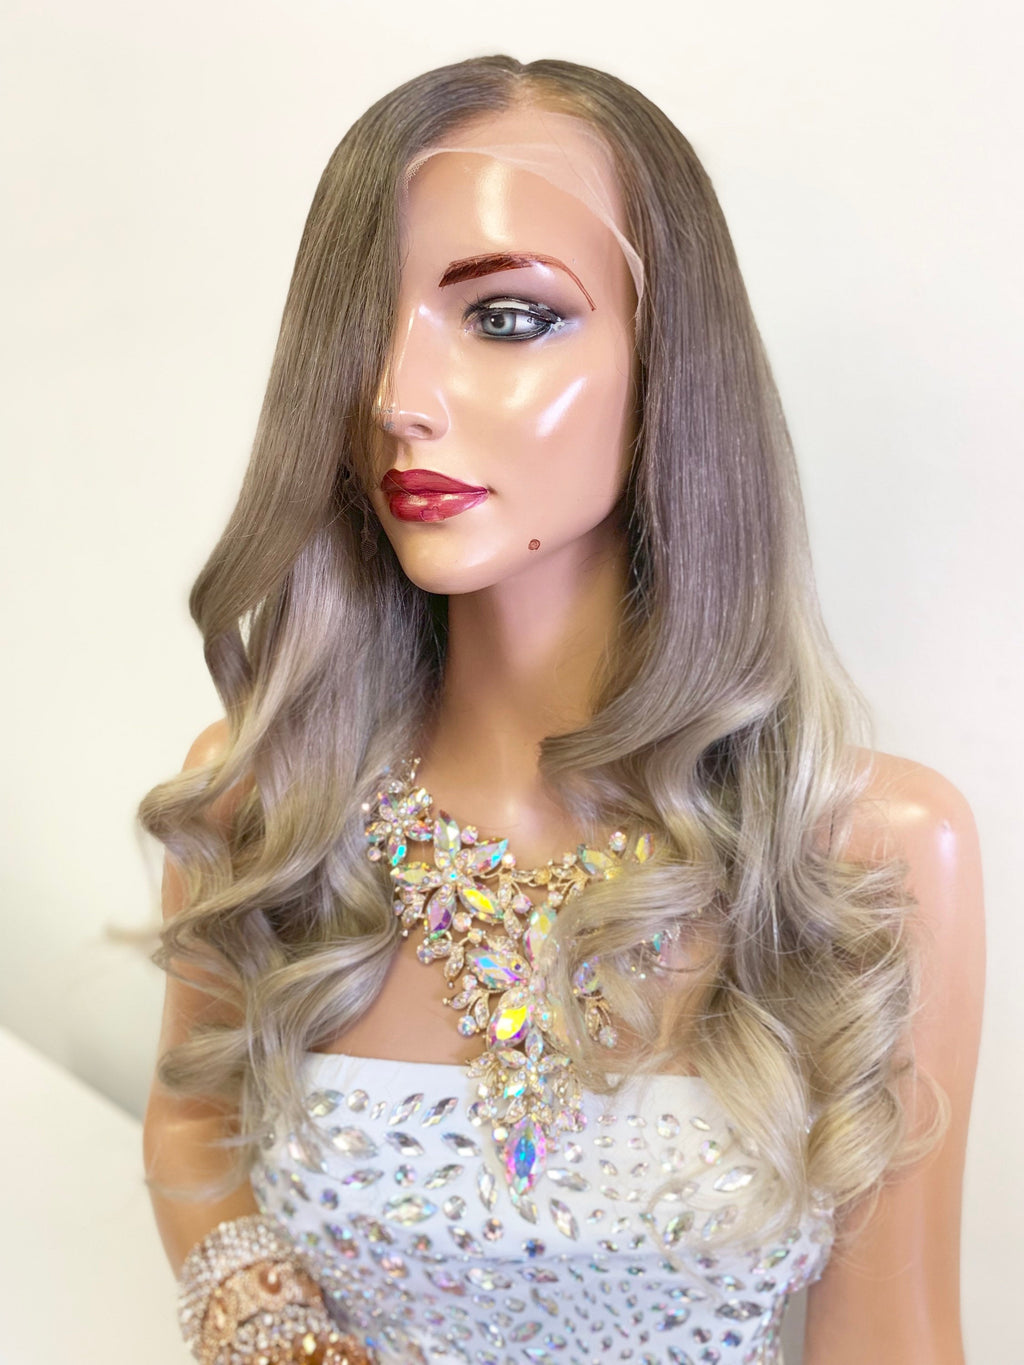 HUMAN HAIR Full lace Wig, Balayage blonde with custom color, Loose curl hair, Virgin hair, 16 inches long